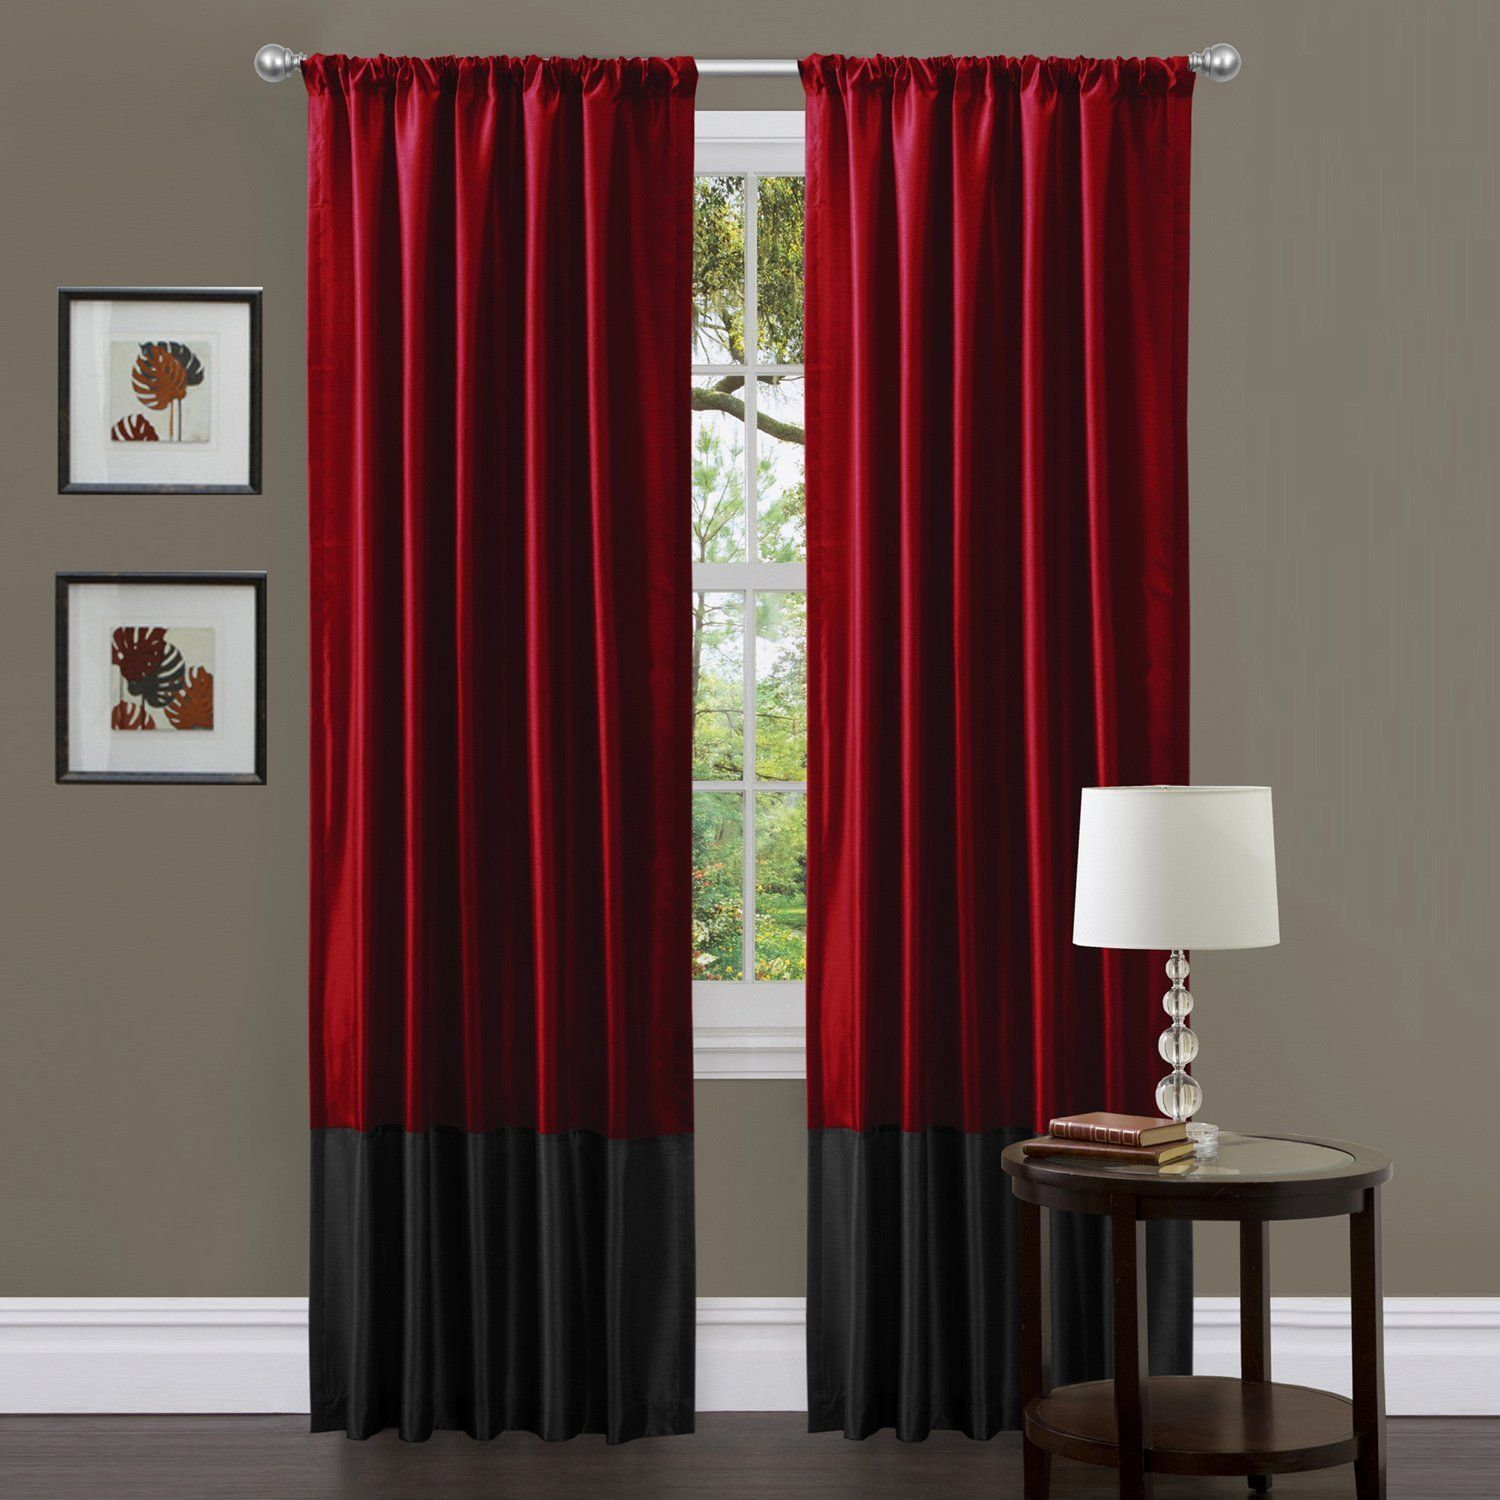 Creative Modern Red Curtain Ideas And Designs To Inspire You Red And Black Curtains Bedroom Red Red Curtains